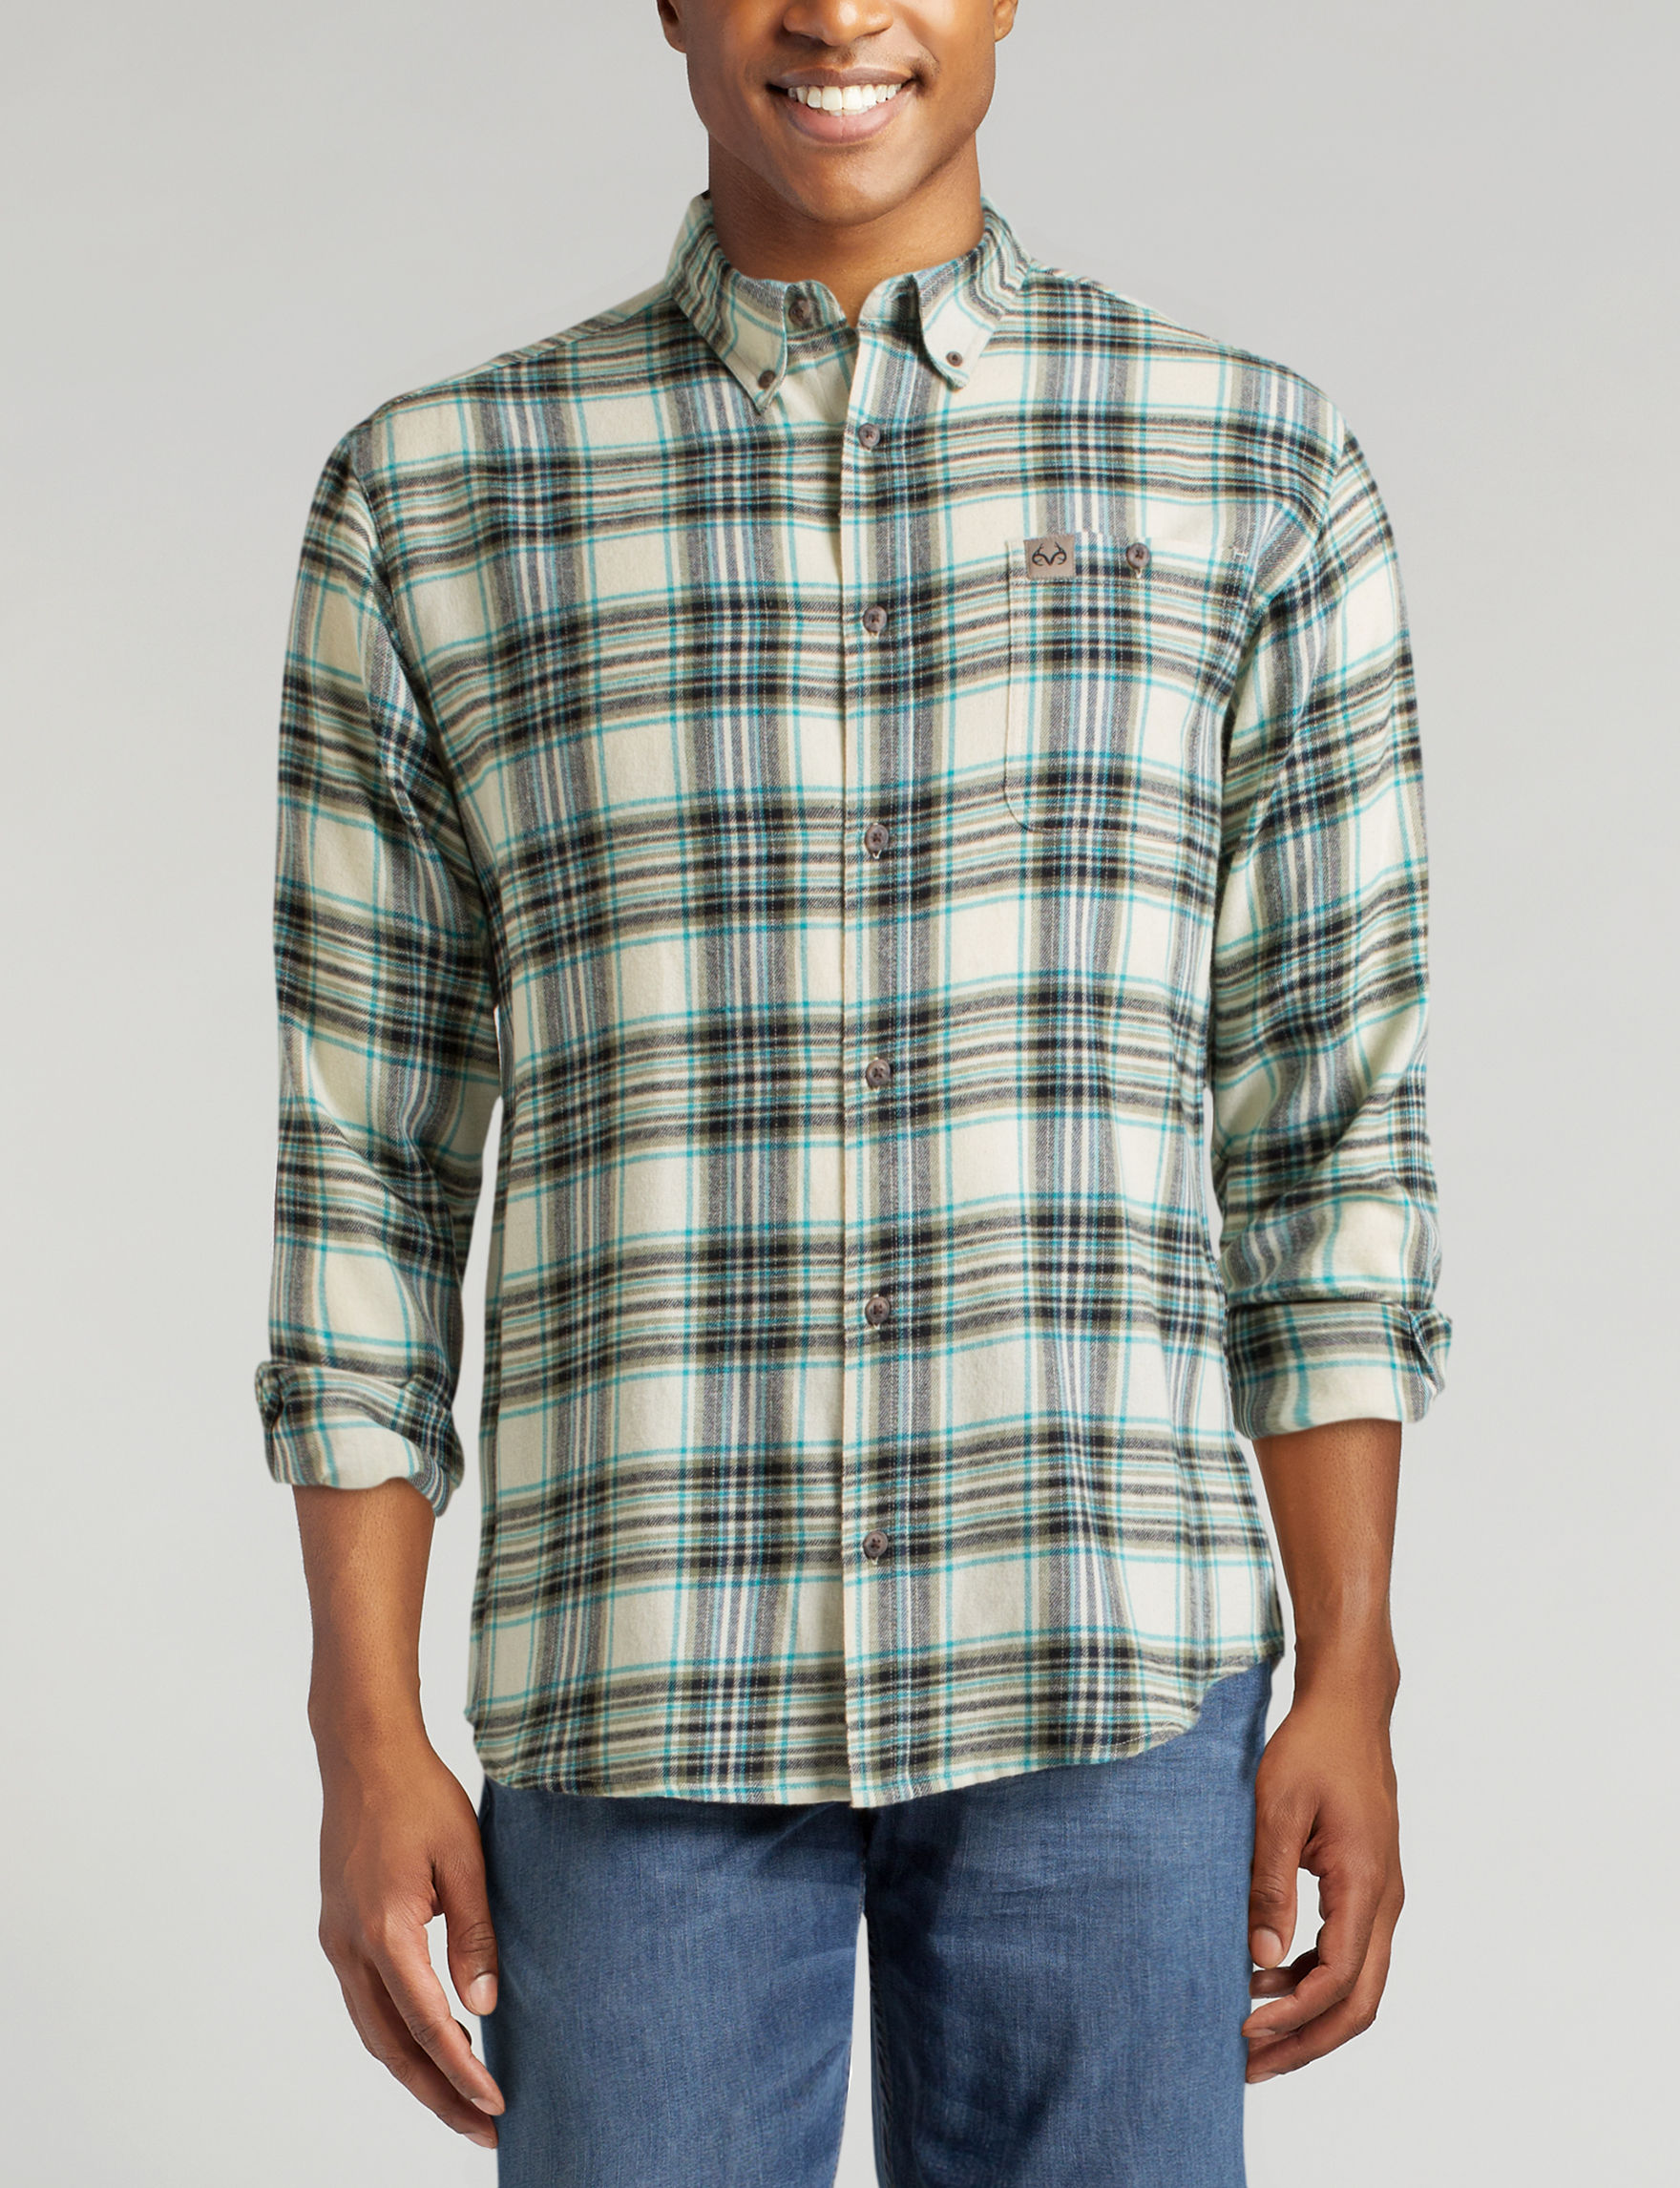 Realtree Brown Plaid Casual Button Down Shirts